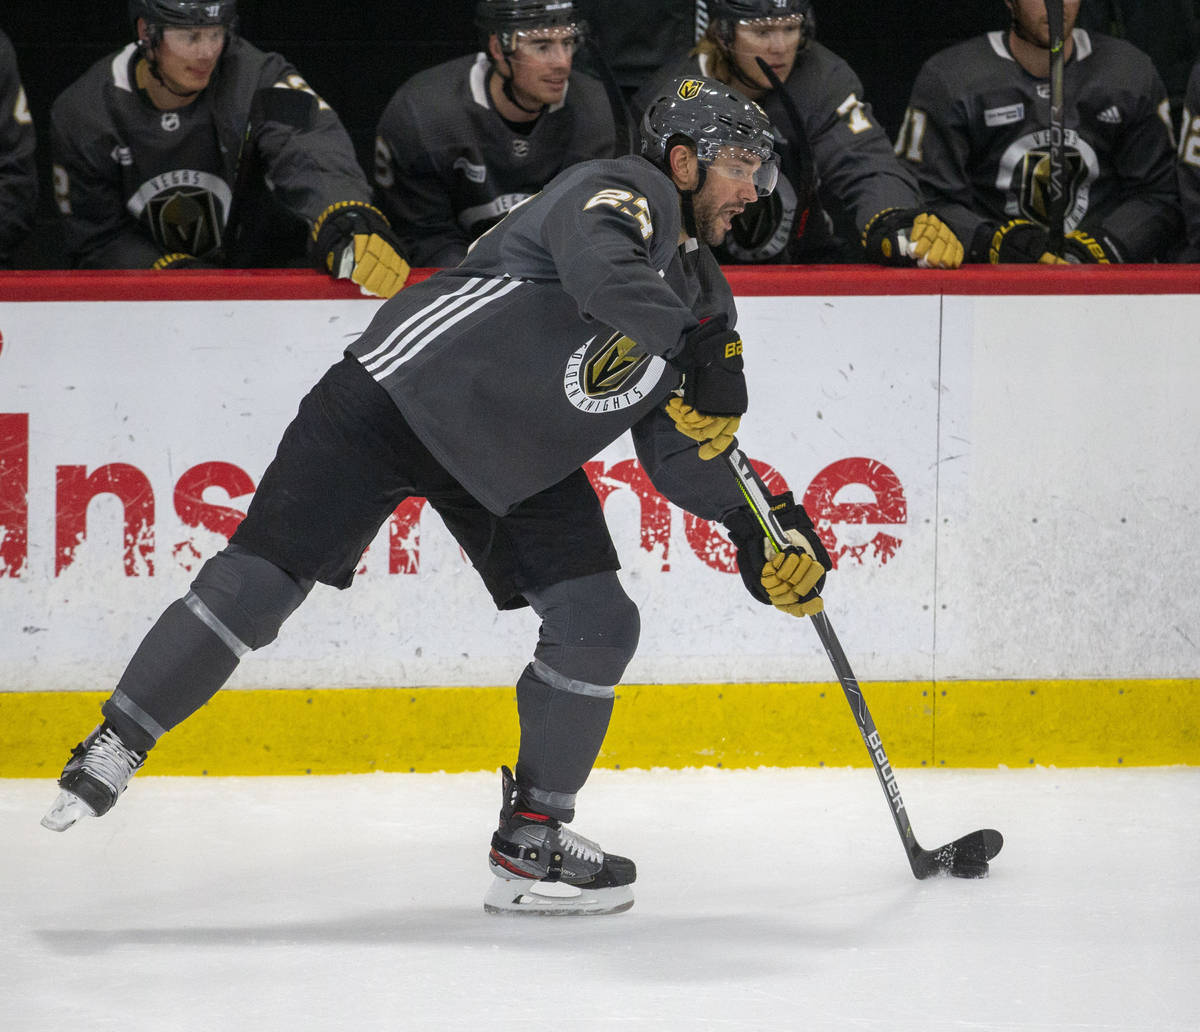 Golden Knights defenseman Alec Martinez (23) shoots the puck on the ice during training camp on ...